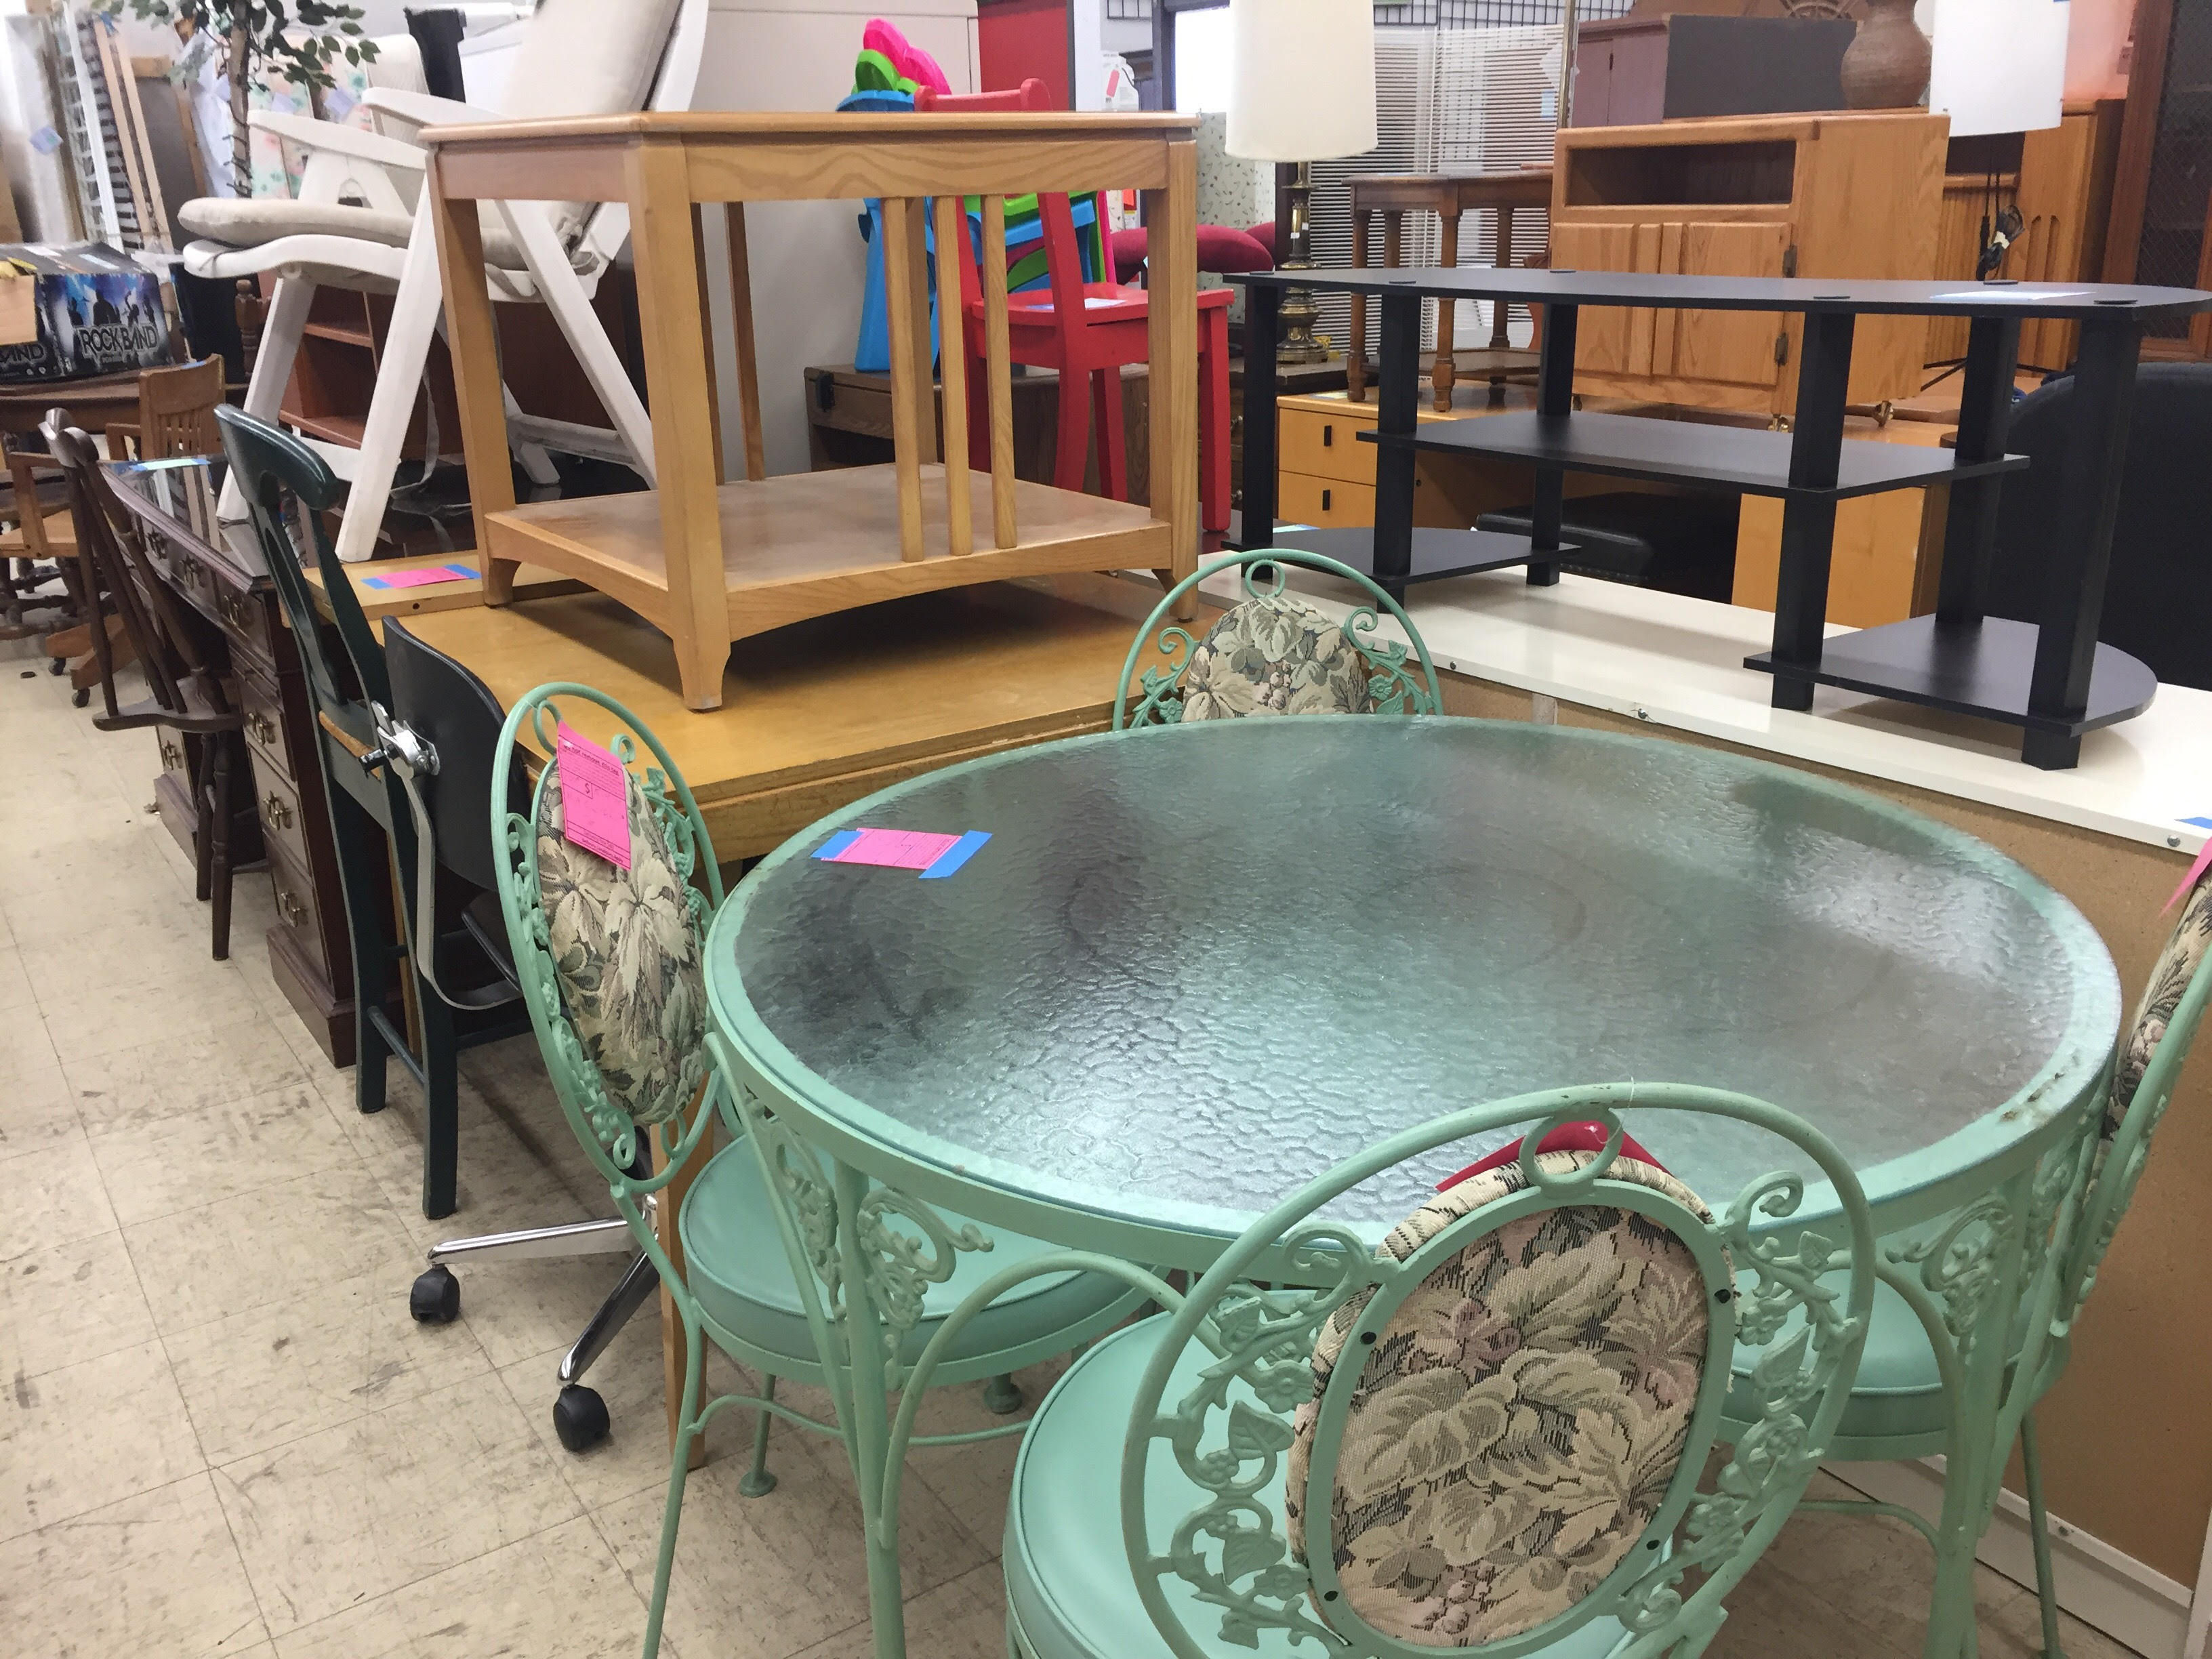 The Ann Arbor Pto Thrift Is Your Source For Unique Gently Used Treasures Where All Profits Benefit Public Schools And Its Students